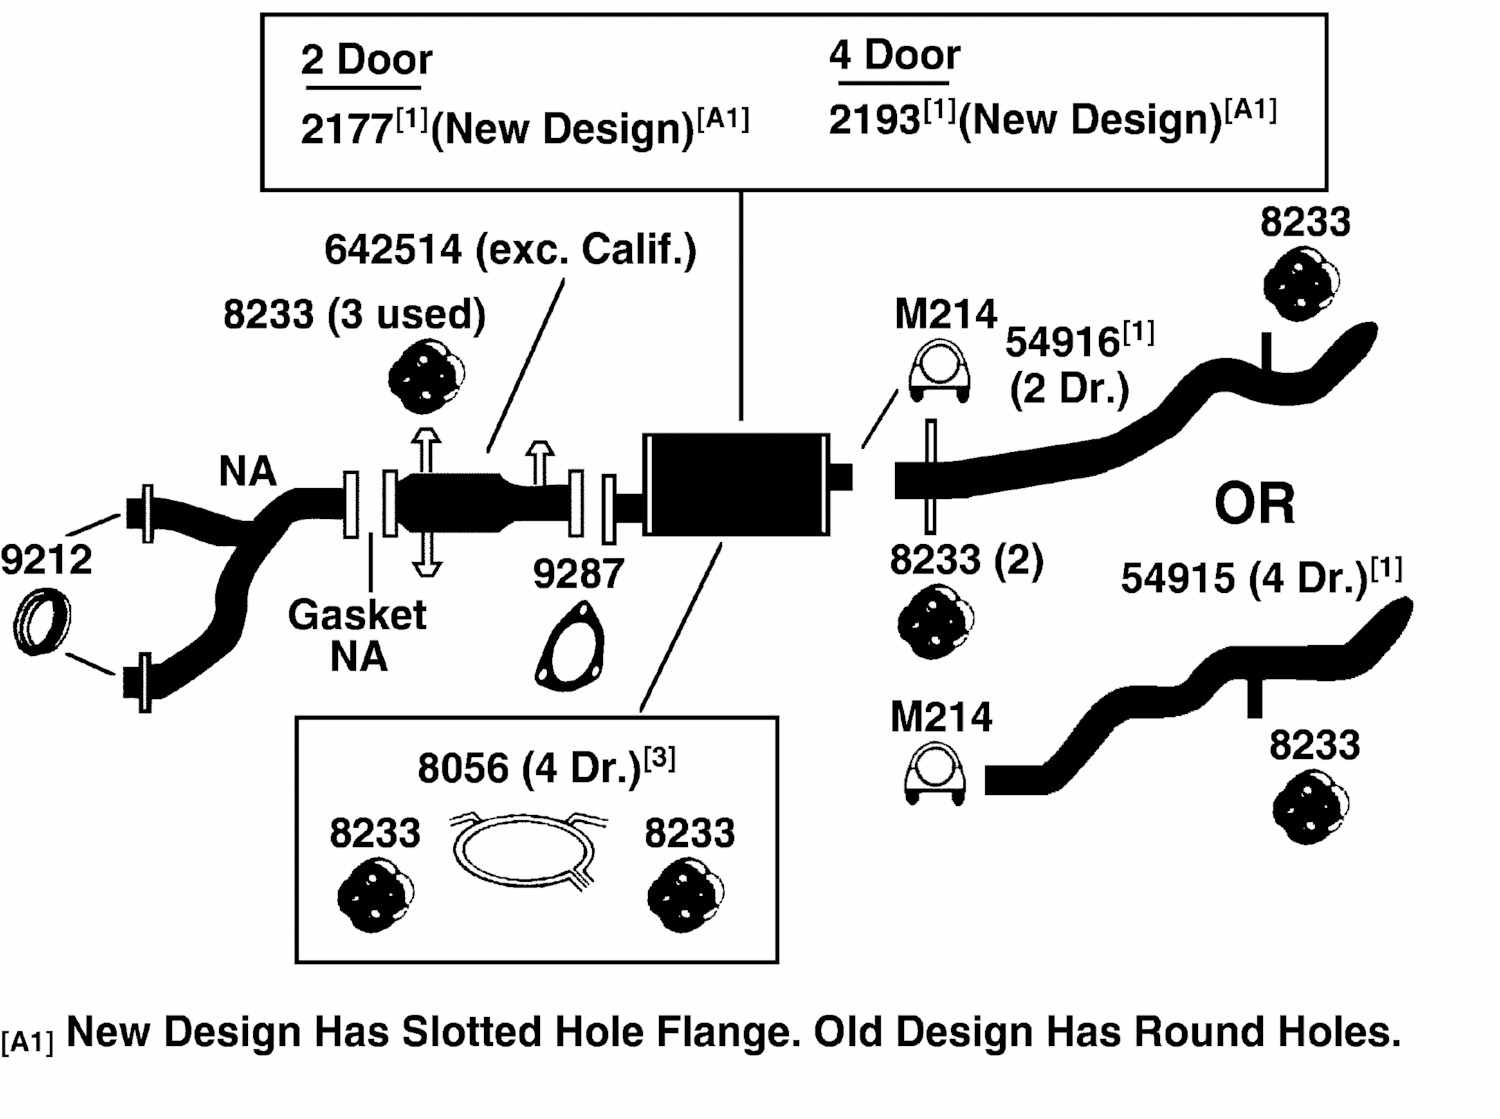 2002 Chevy Cavalier Exhaust Diagram | Wiring Diagram